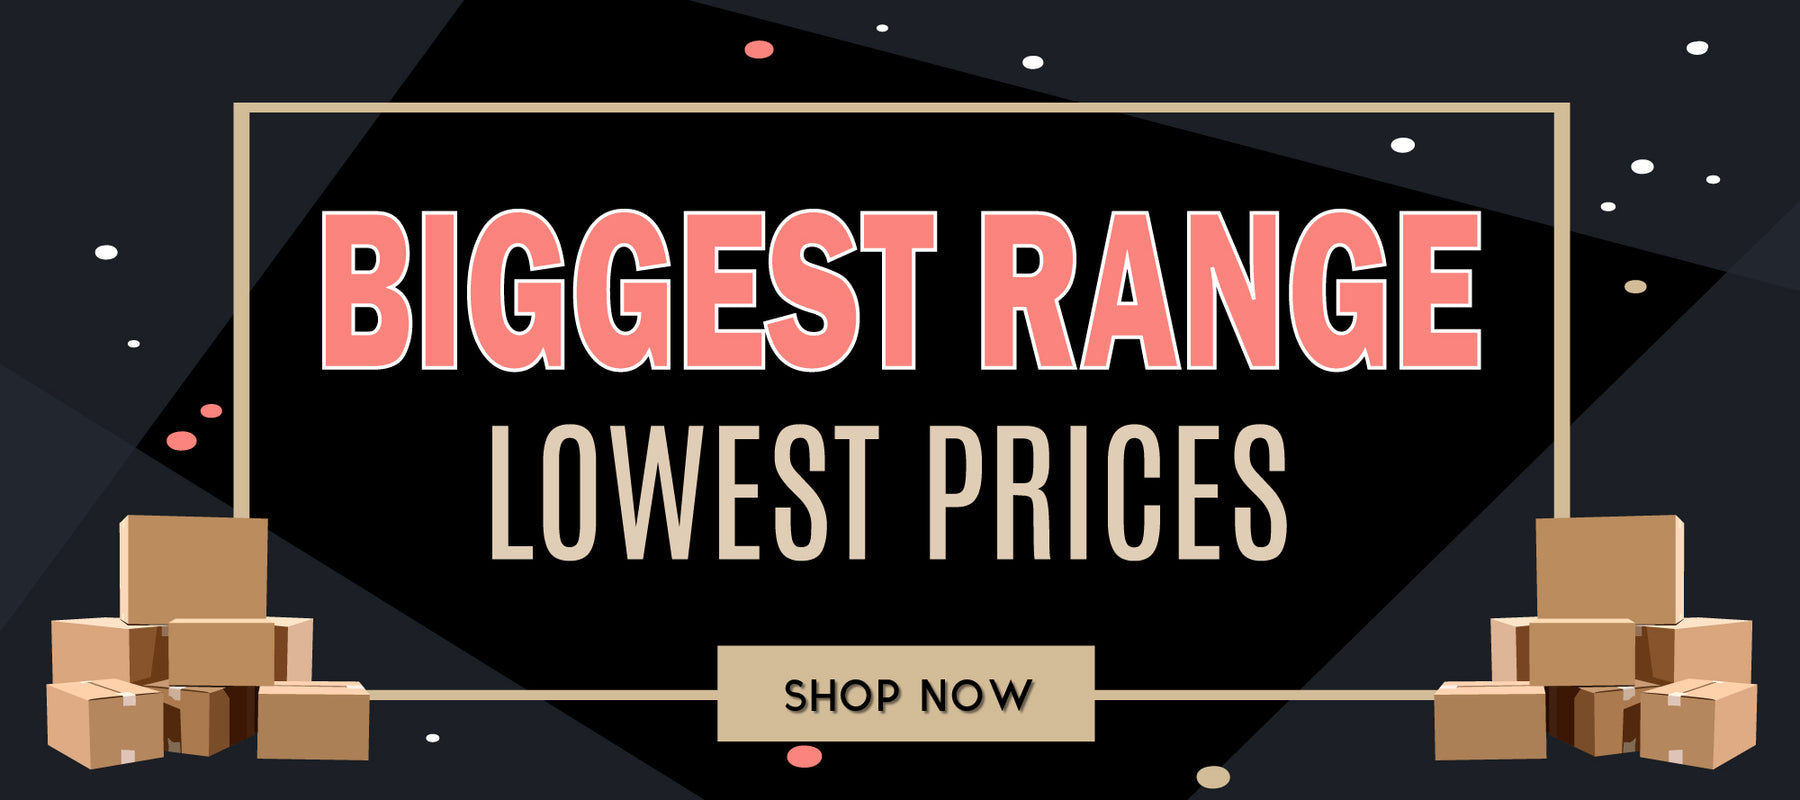 Bongsmart: Biggest range, lowest prices